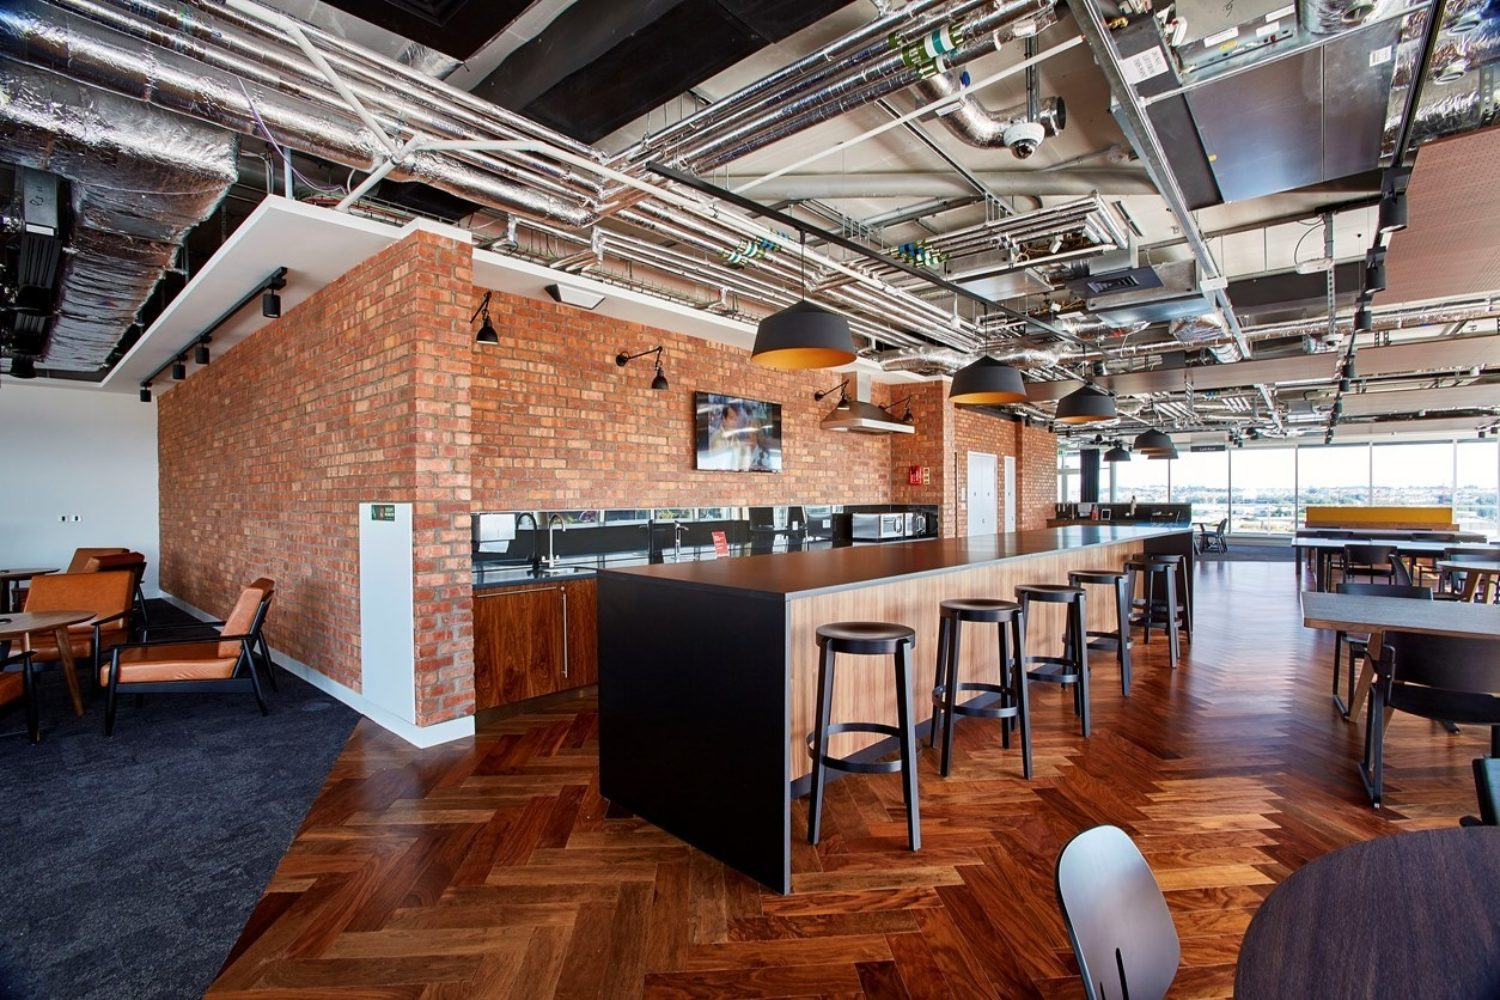 PwC bristol office kitchen fit out